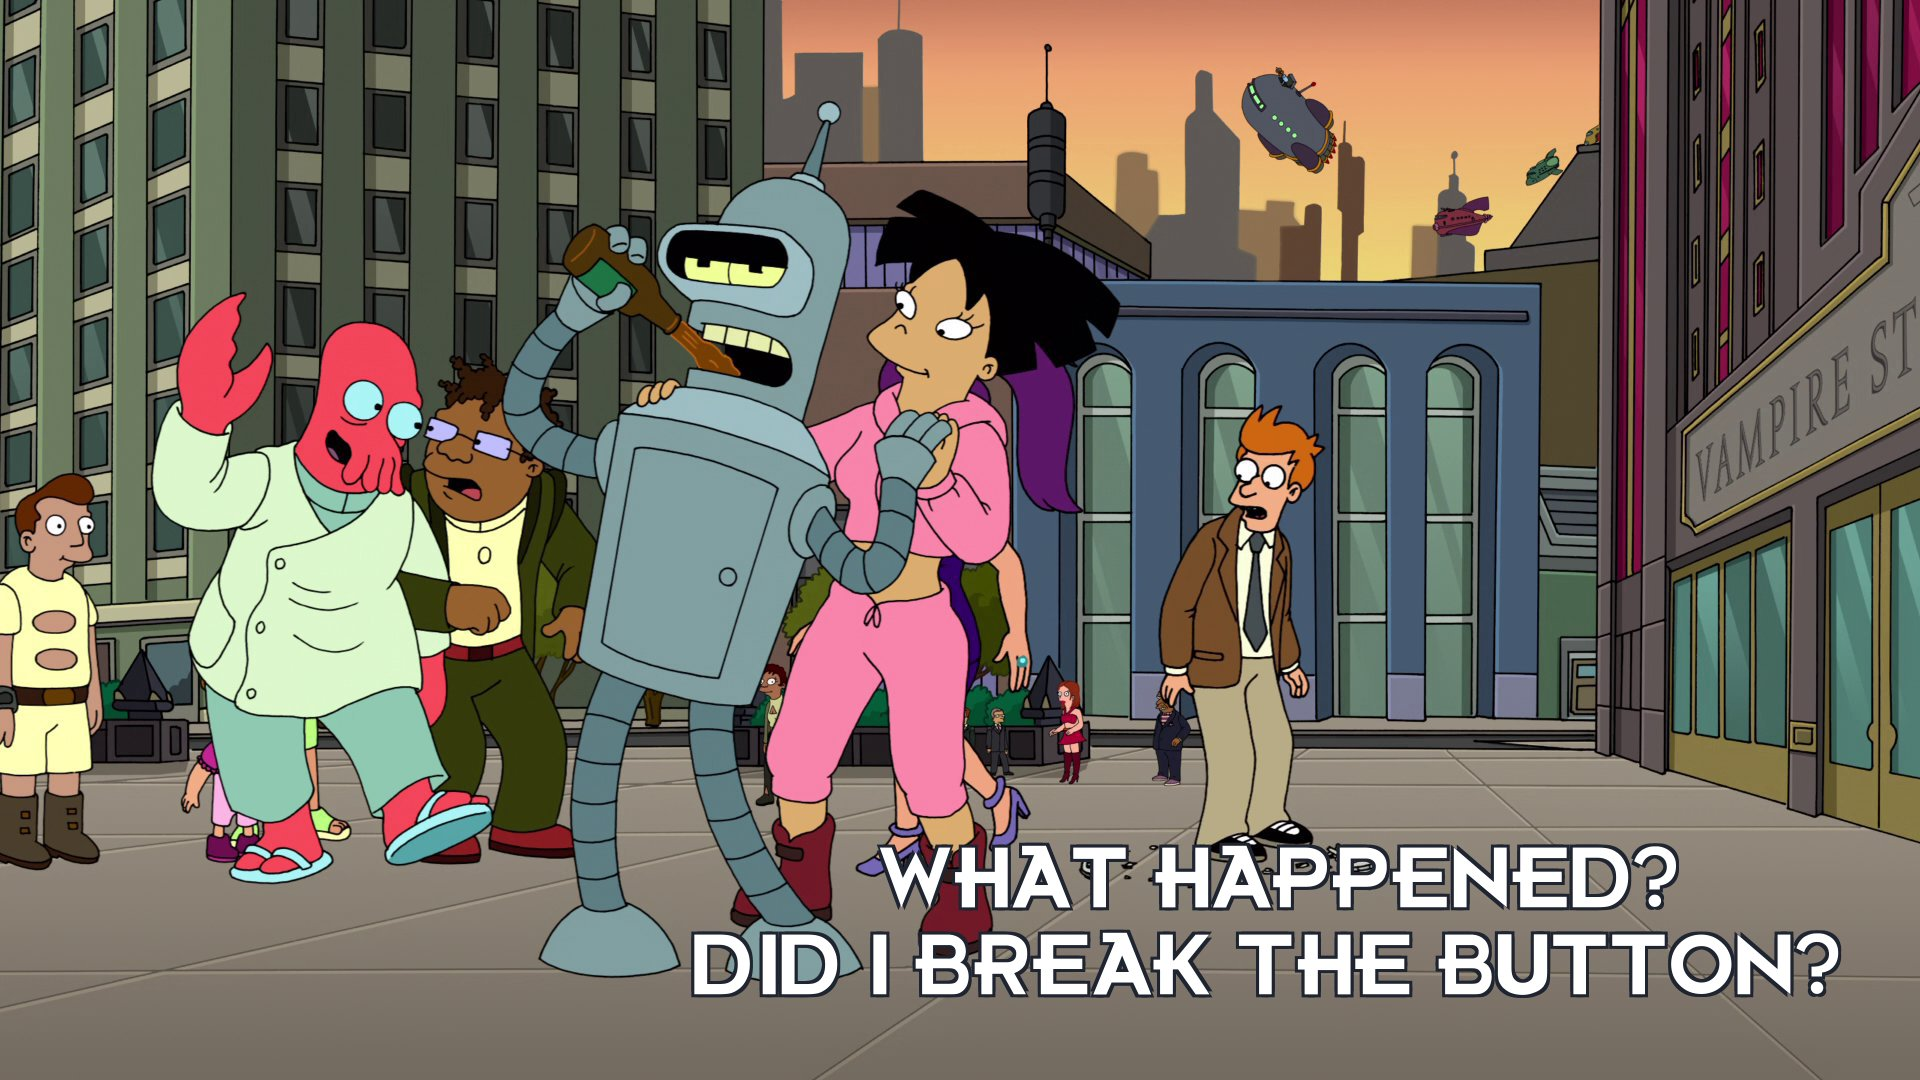 Philip J Fry: What happened? Did I break the button?